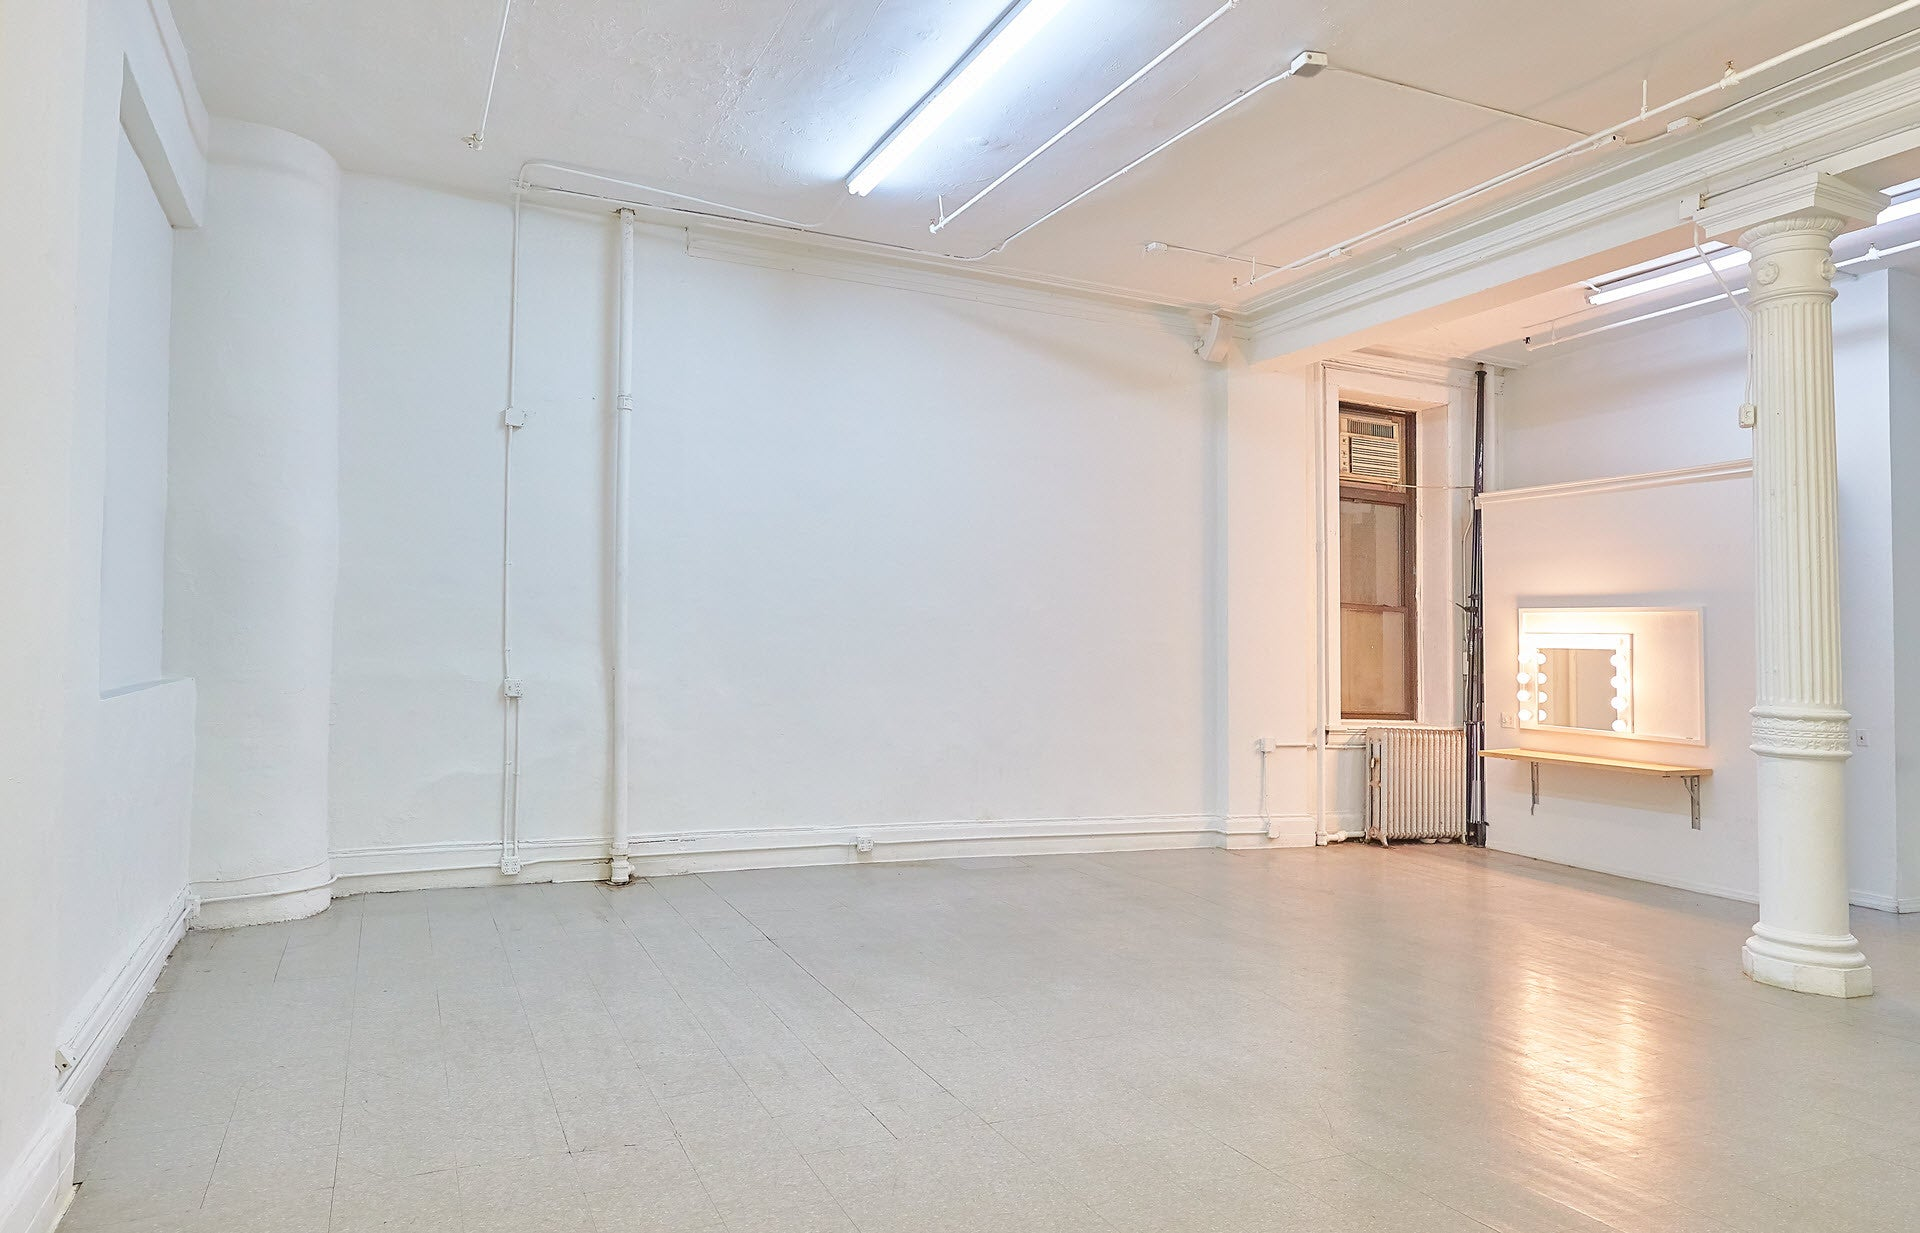 NYC SPACE RENTAL FOR ARTISTS